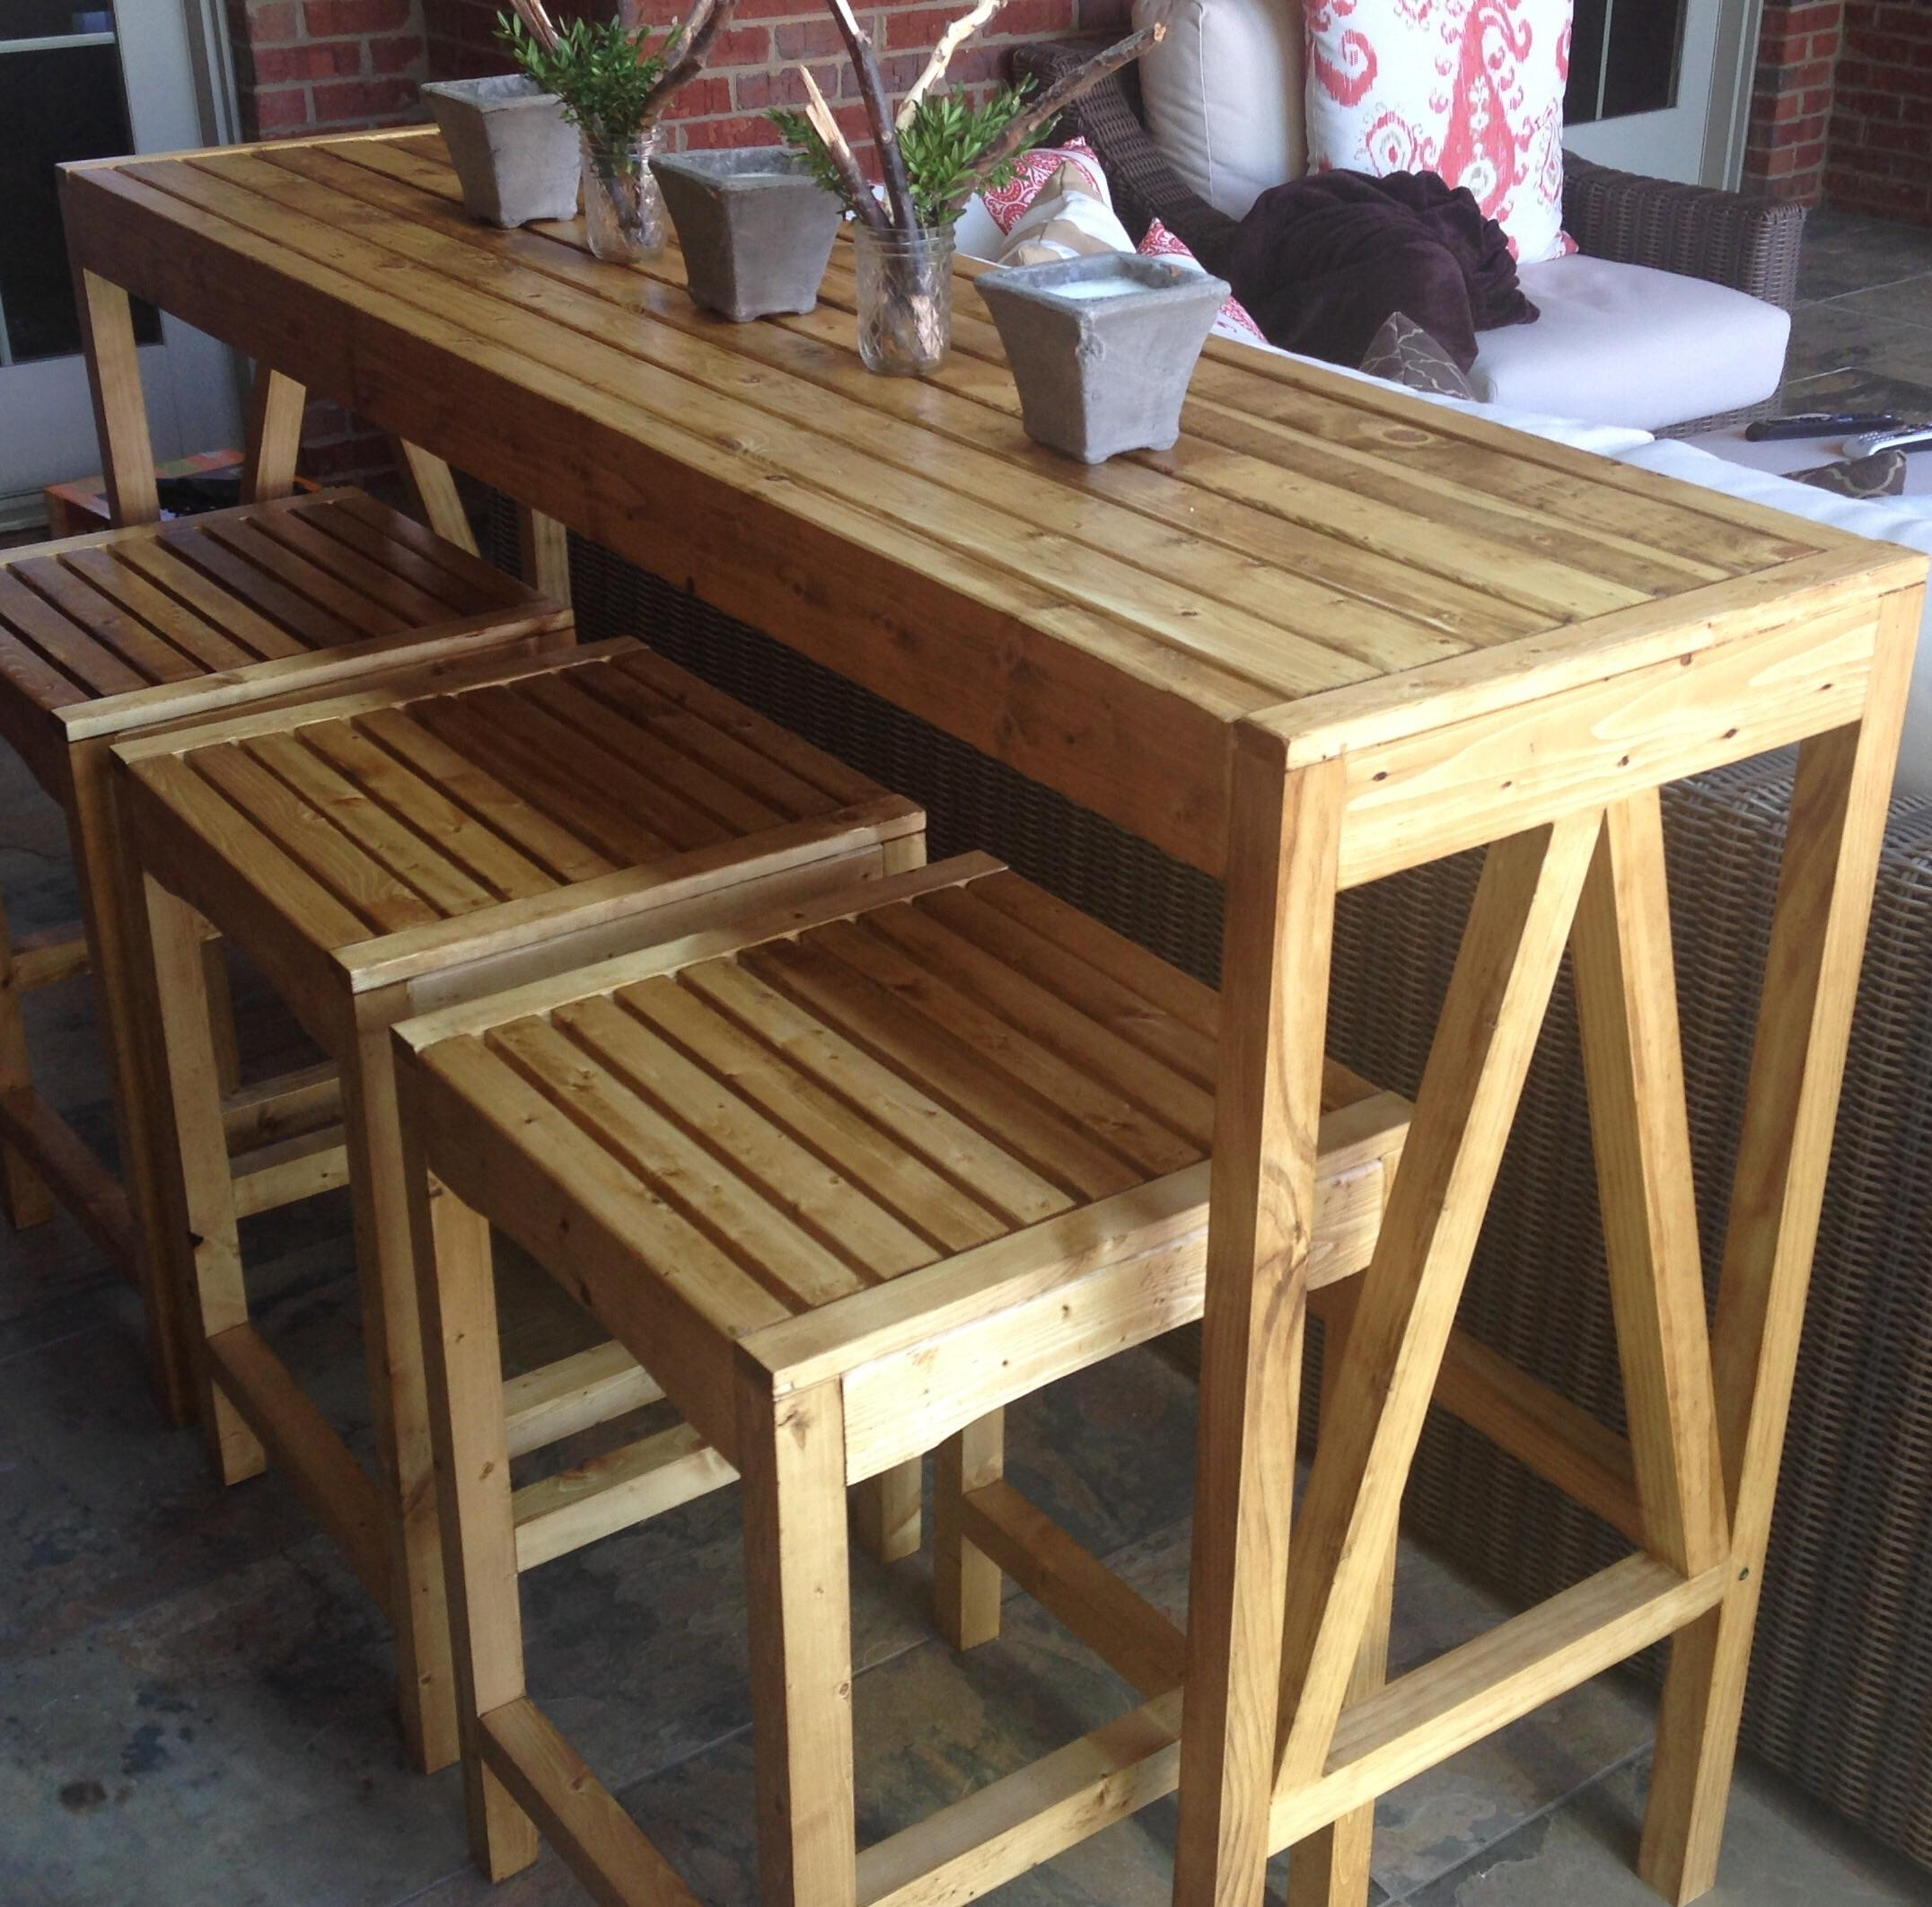 Ana White | Sutton Custom Outdoor Bar Stools – Diy Projects Throughout Ana White Outdoor Sofas (View 18 of 20)